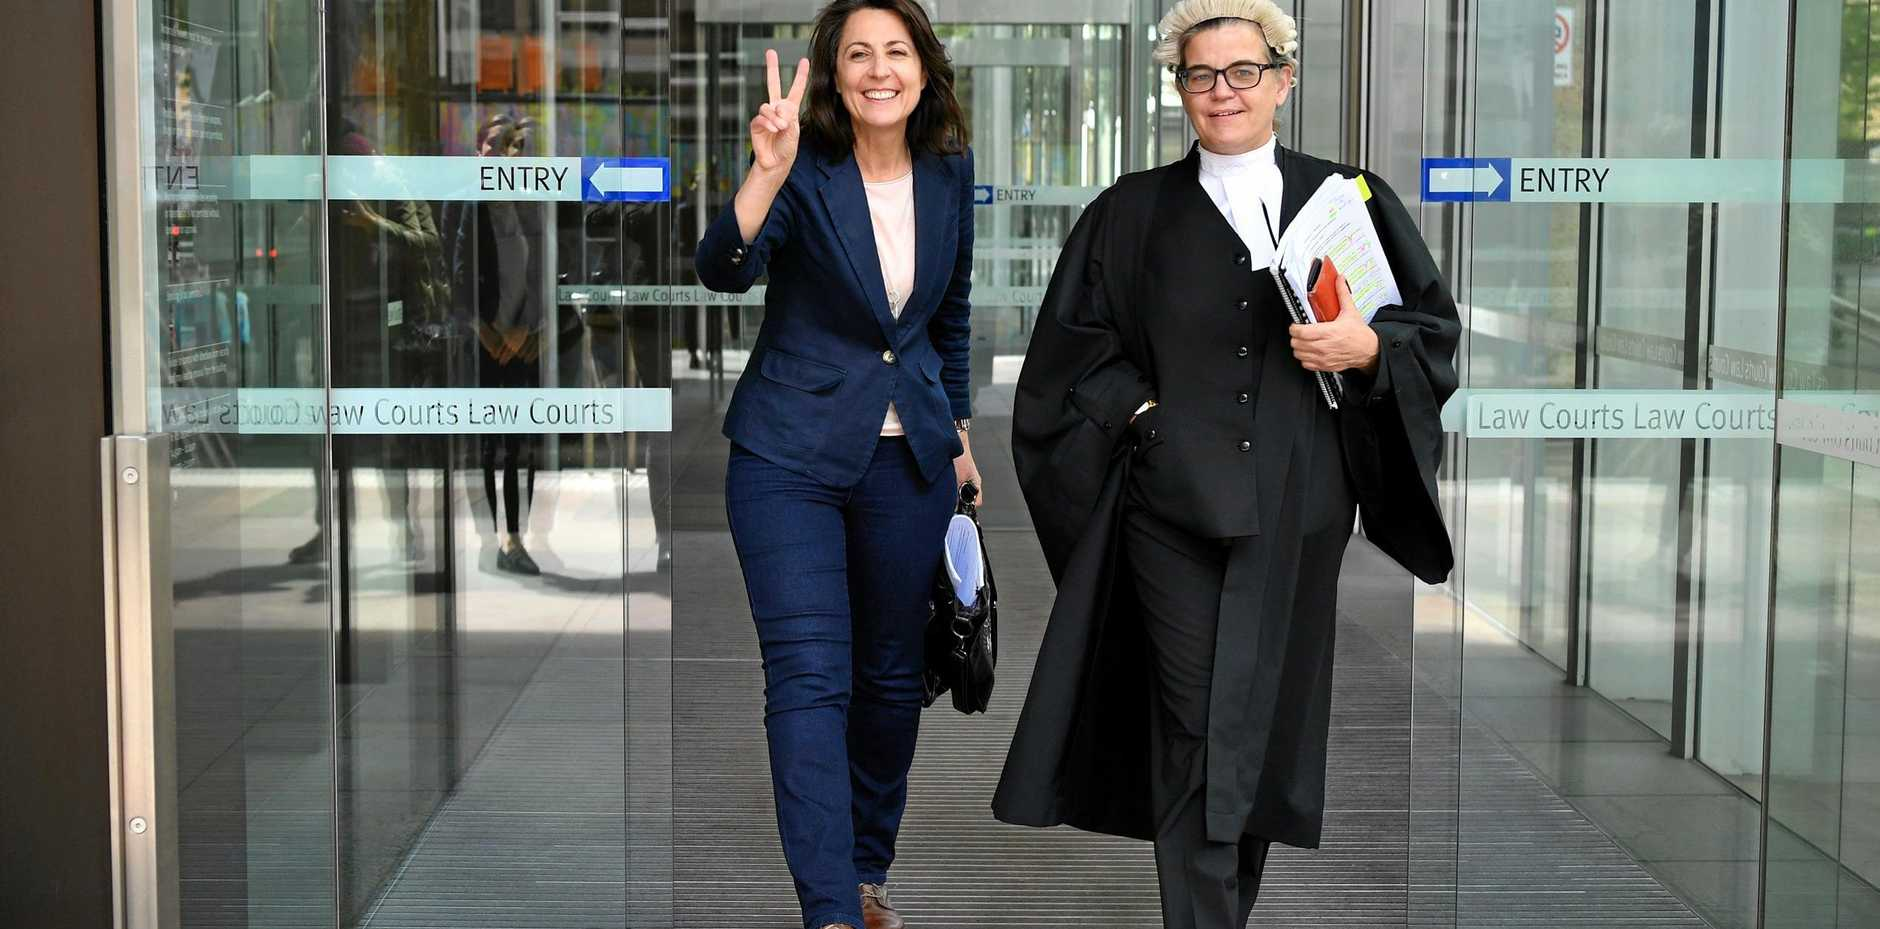 FURTHER HEARING: A court will hear whether Serge Benhayon's law firm's conduct toward Esther Rockett (left) would constitute a referral to the Office of the Legal Services Commissioner.